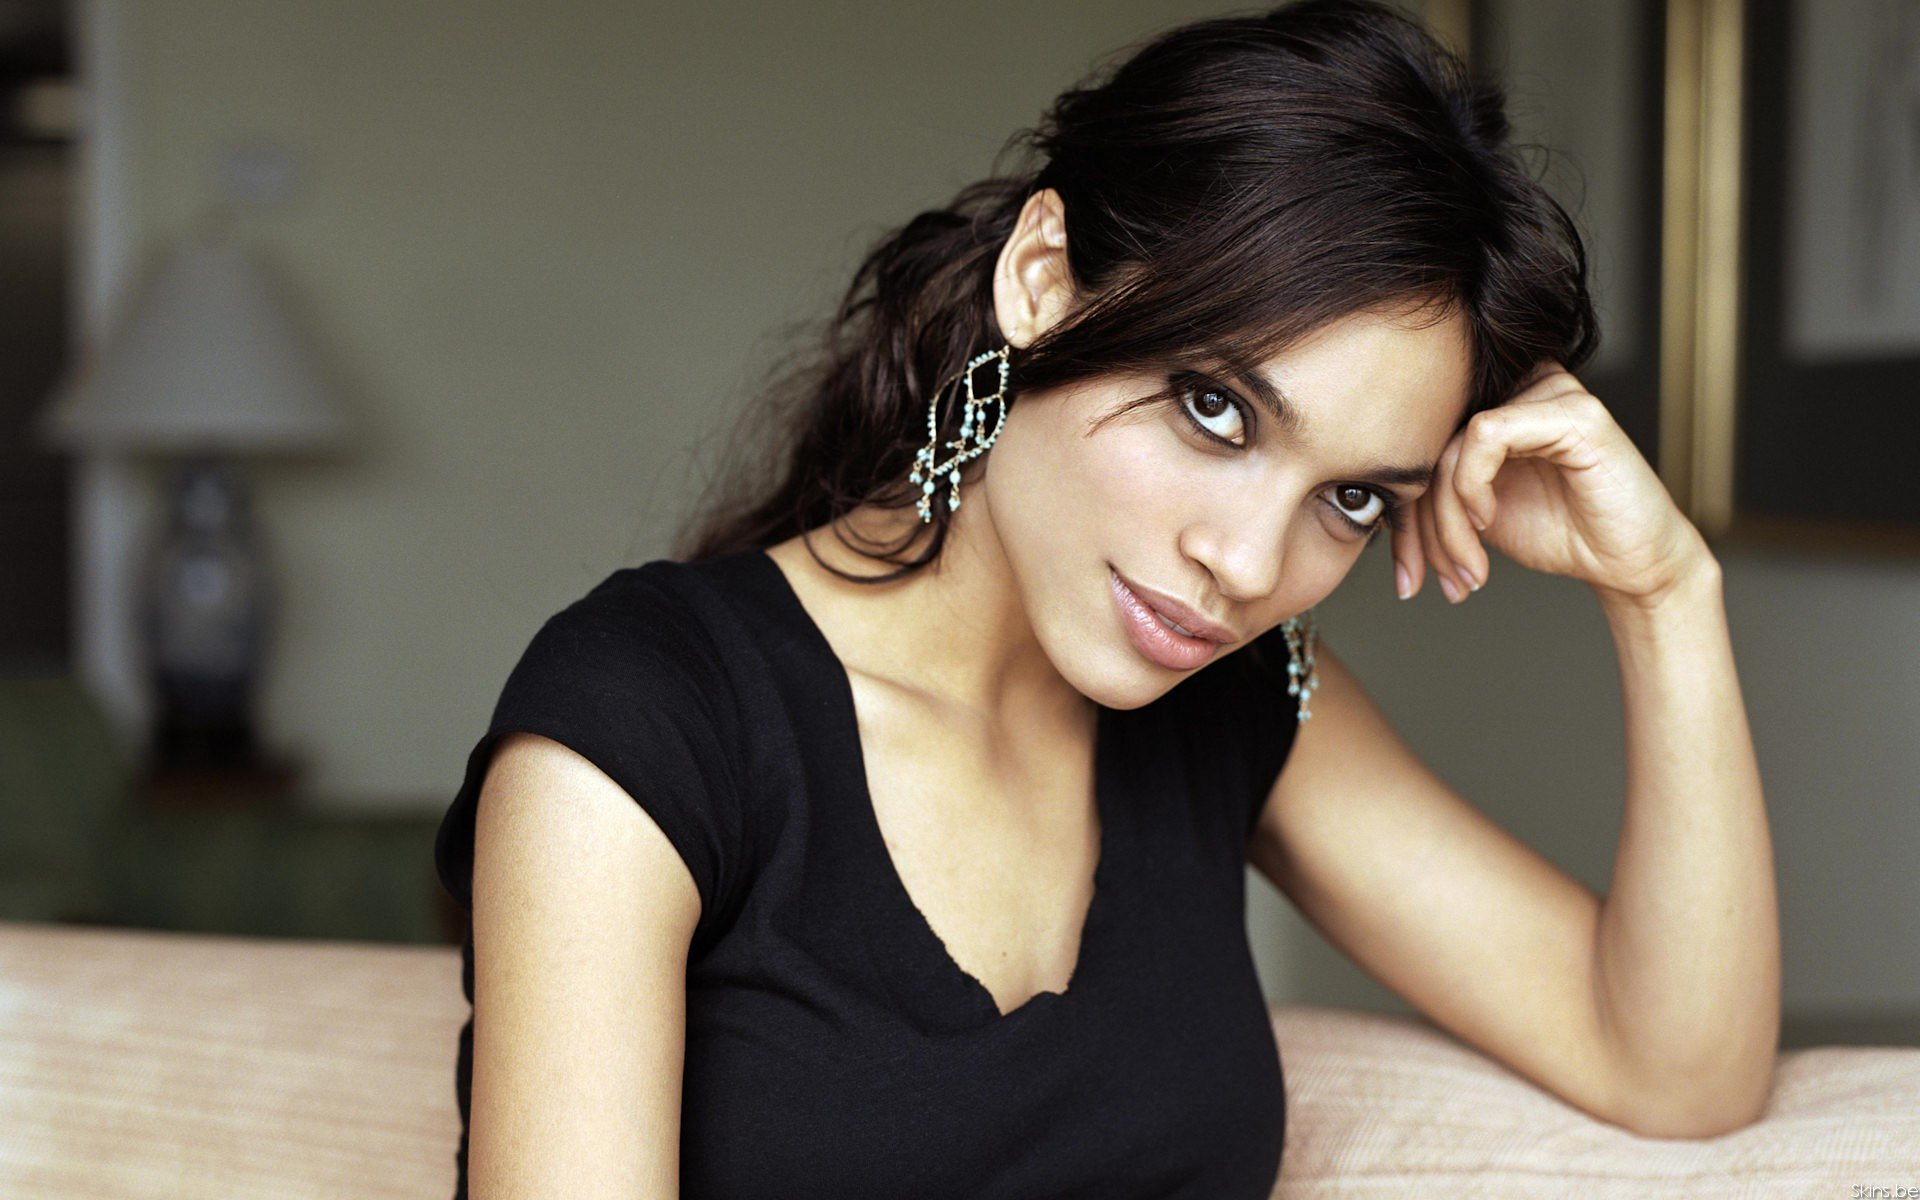 Download hd 1920x1200 Rosario Dawson PC background ID:381002 for free